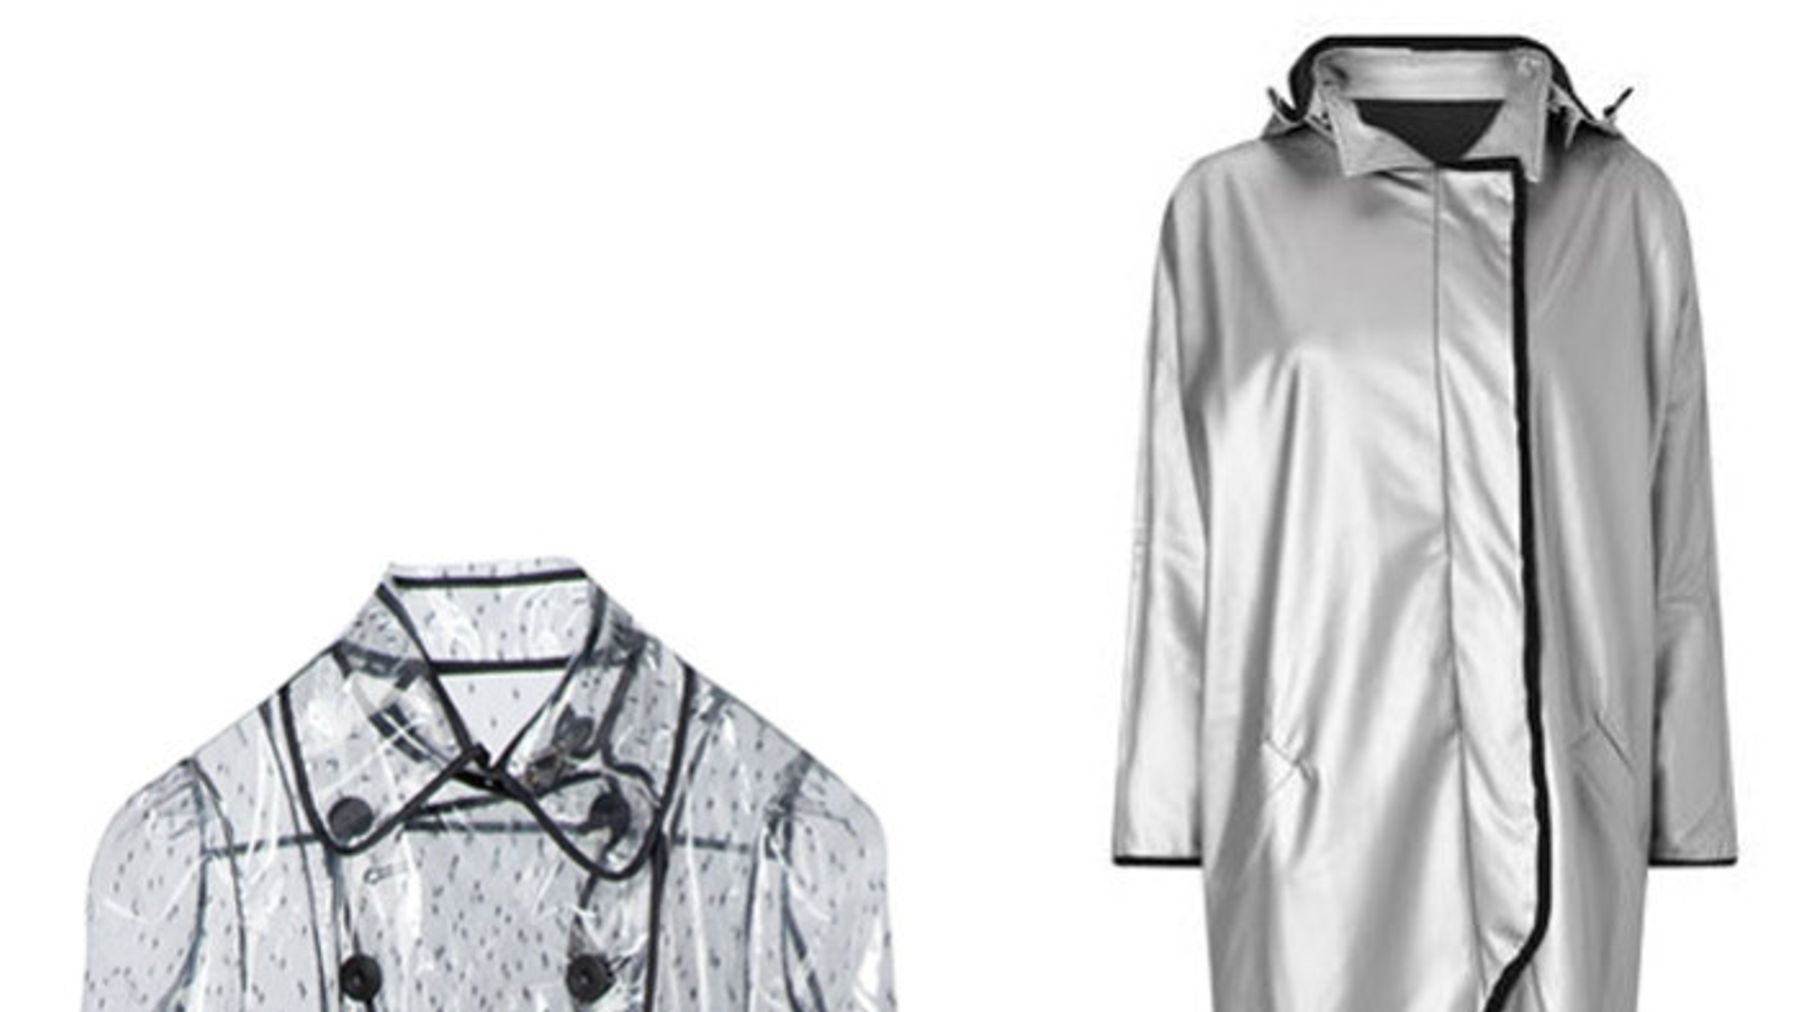 a3a2facca747 The Raincoats You Need To Survive Those Autumn Showers | Grazia